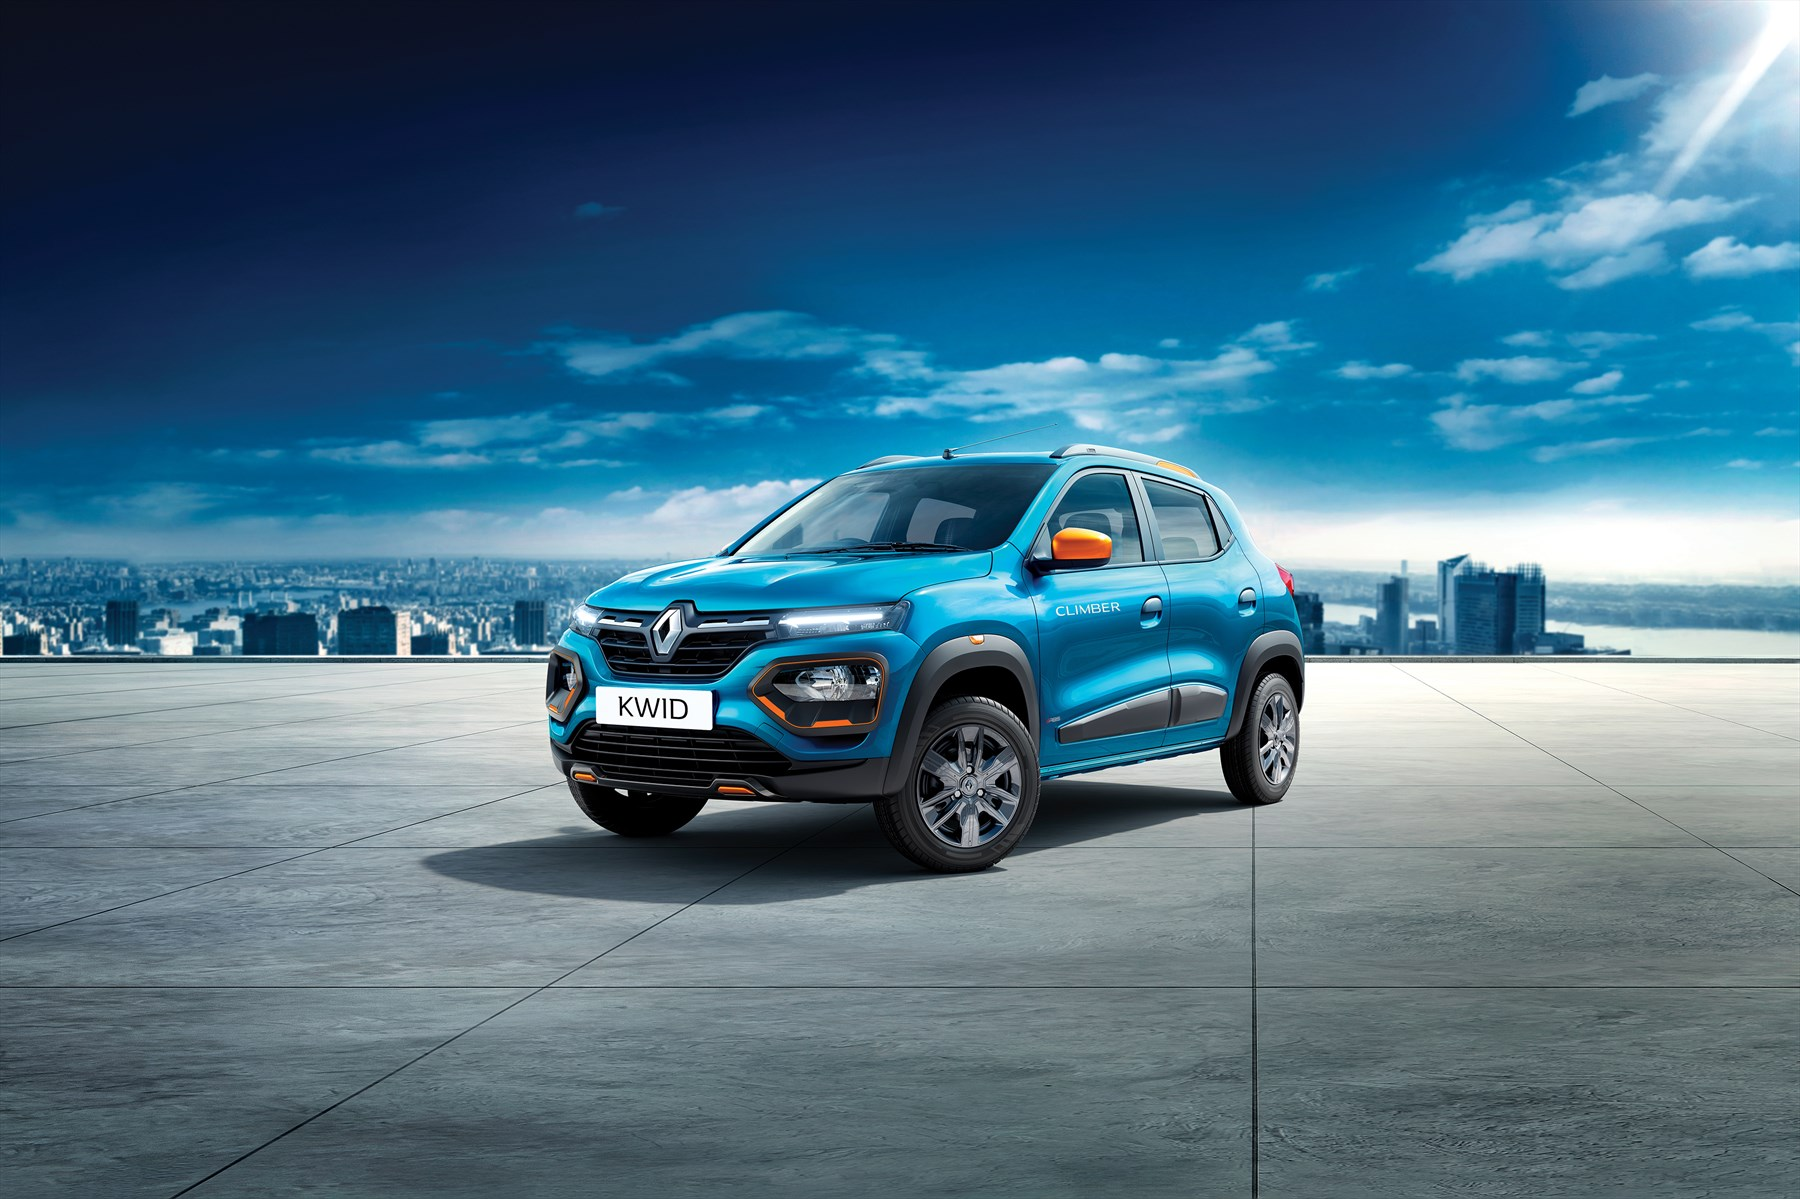 New Renault KWID set to challenge the status quo of the entry-level vehicle segment